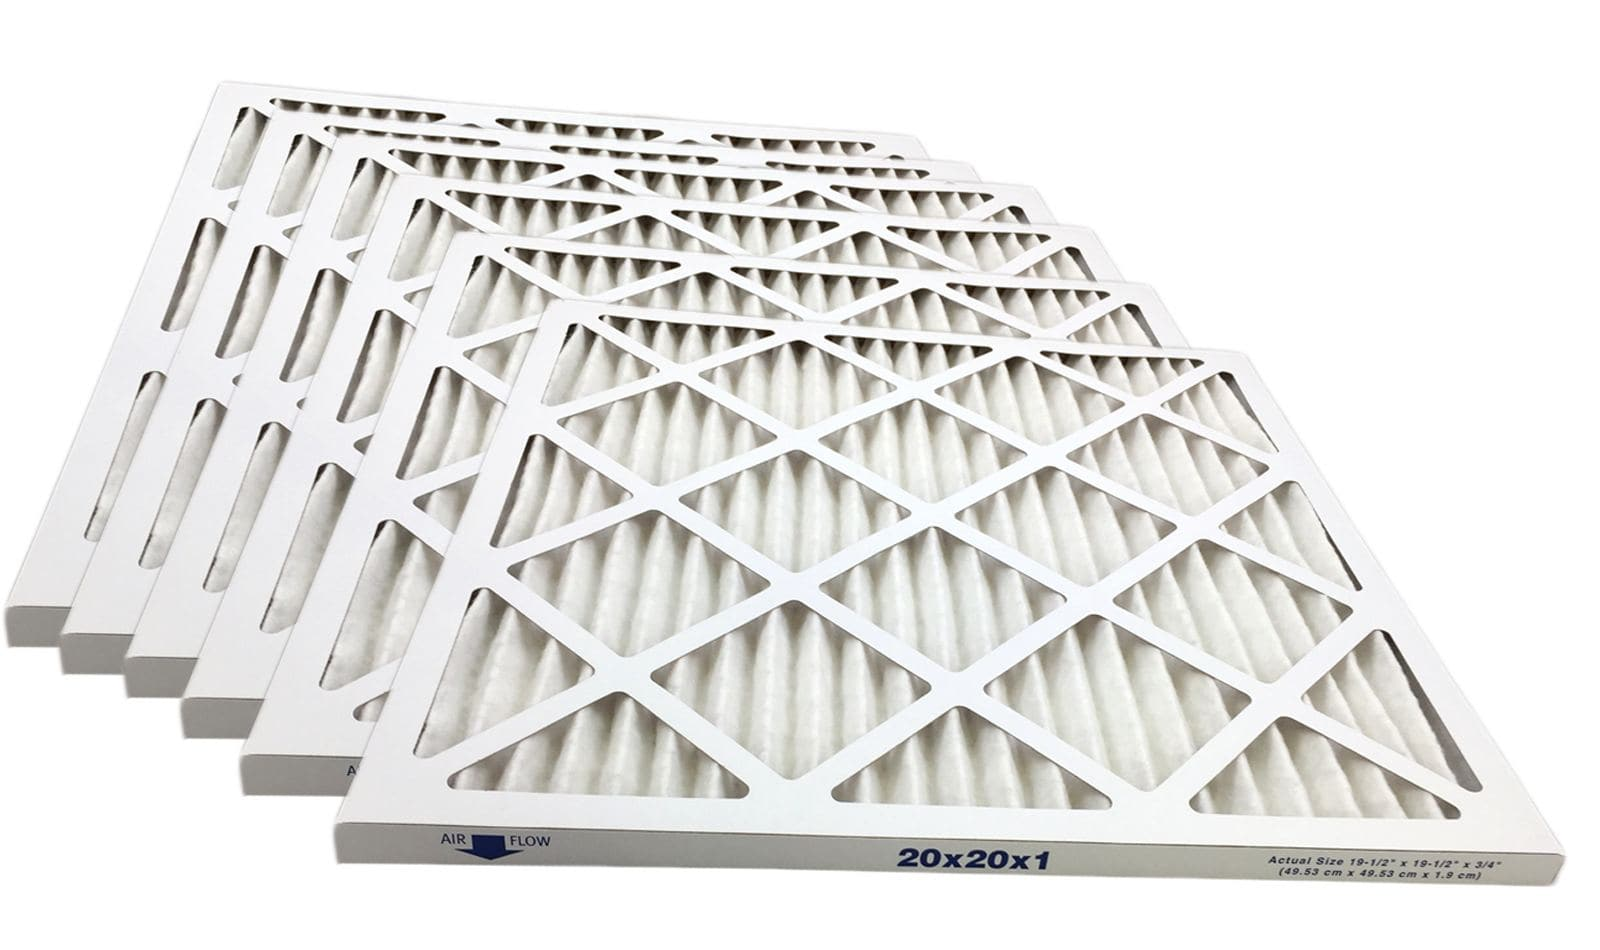 20x20x1 Merv 11 Pleated Air Filter - Case of 6 by Atomic